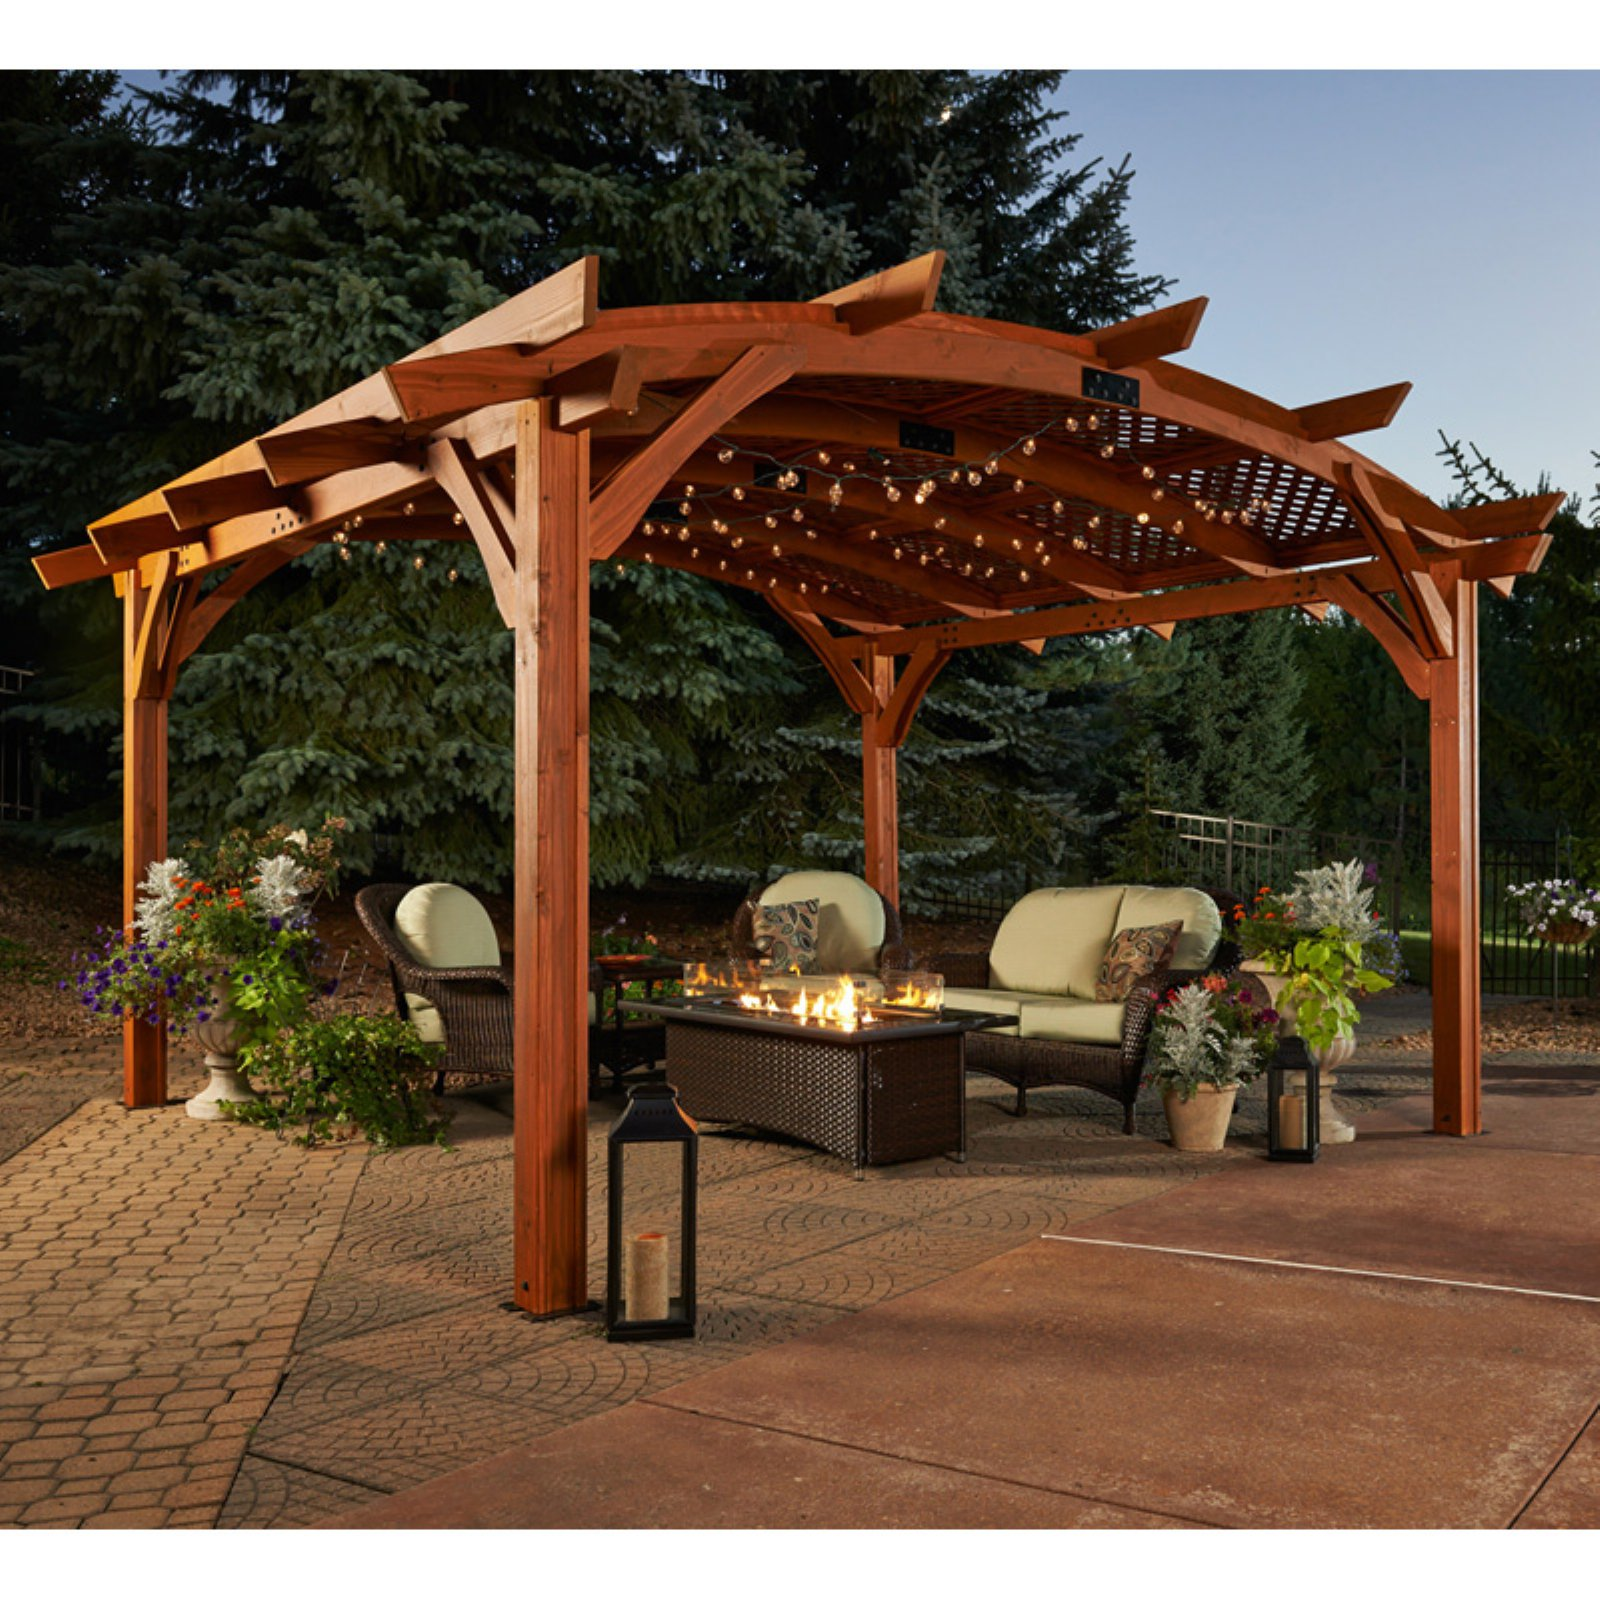 Sonoma 12 x 16 ft. Arched Wood Pergola Redwood by Outdoor Greatroom Company